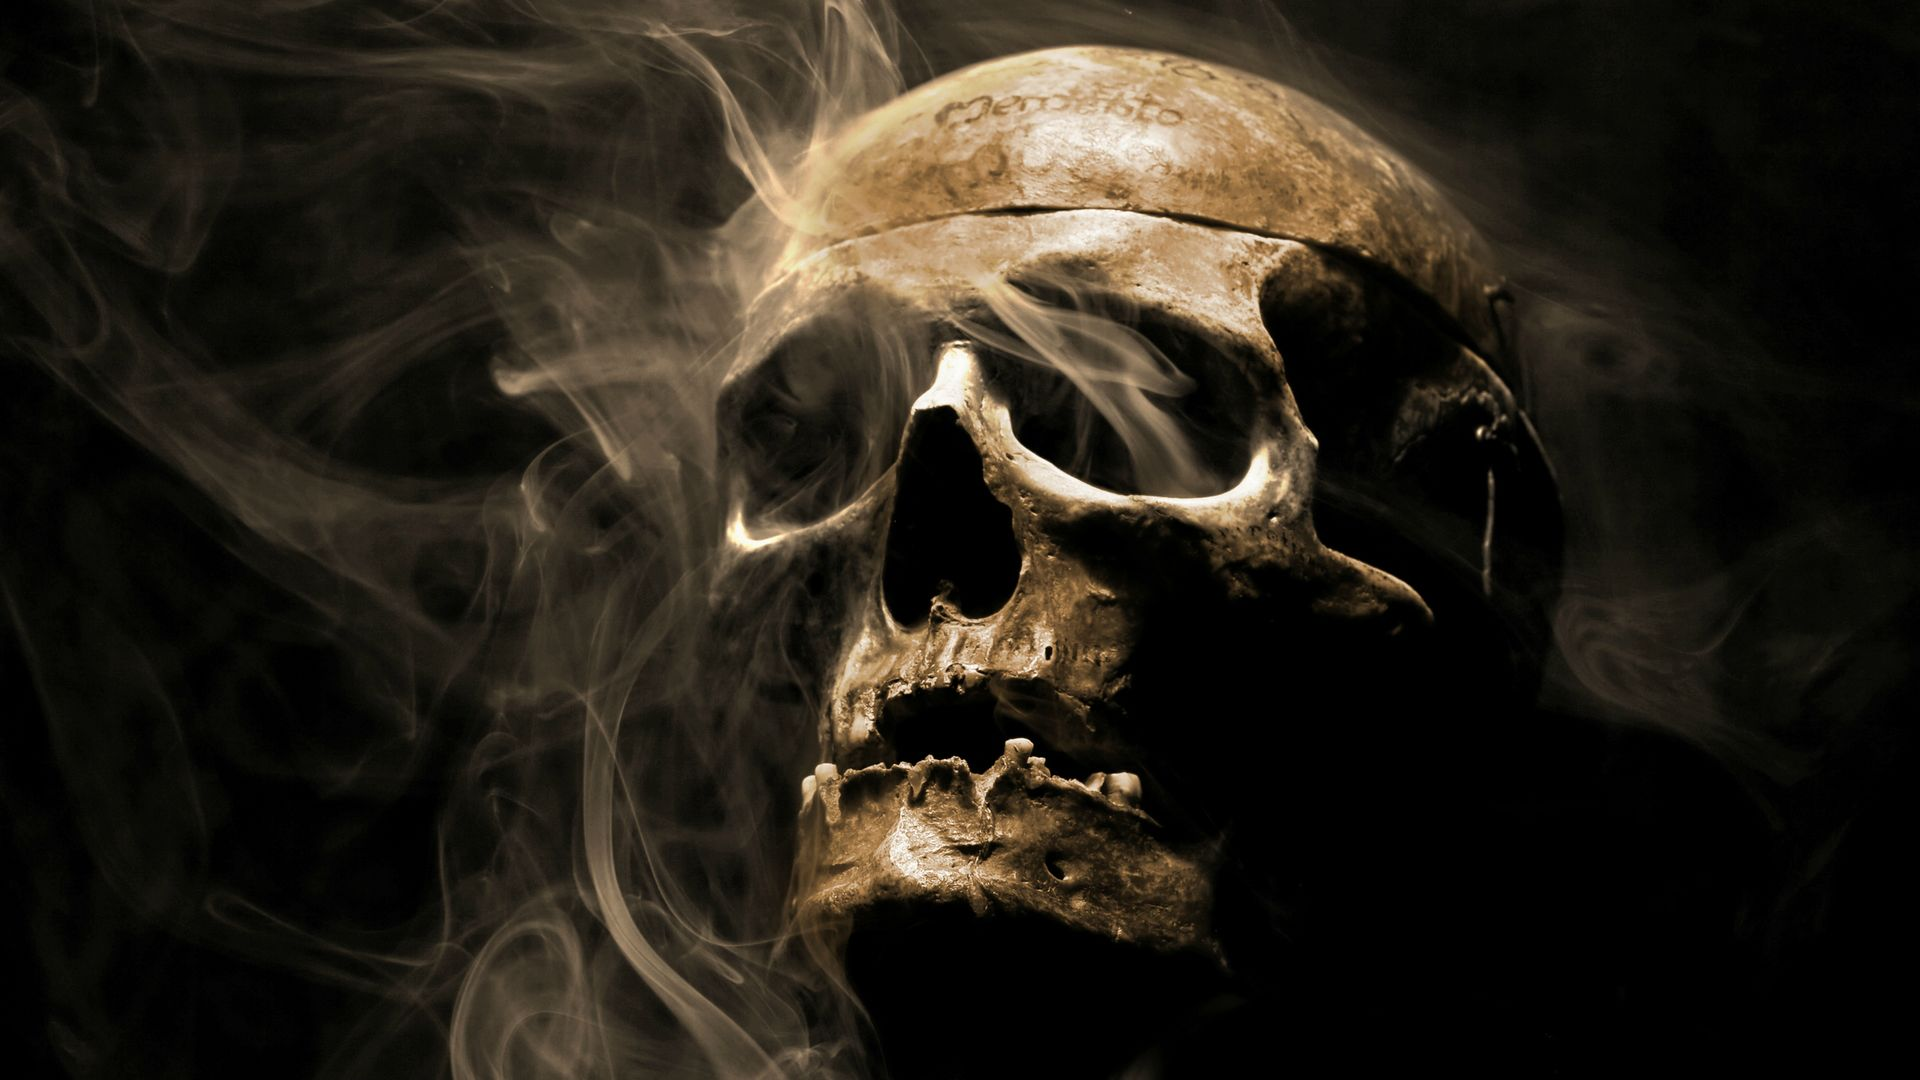 pc human skull wallpapers, maybelle field